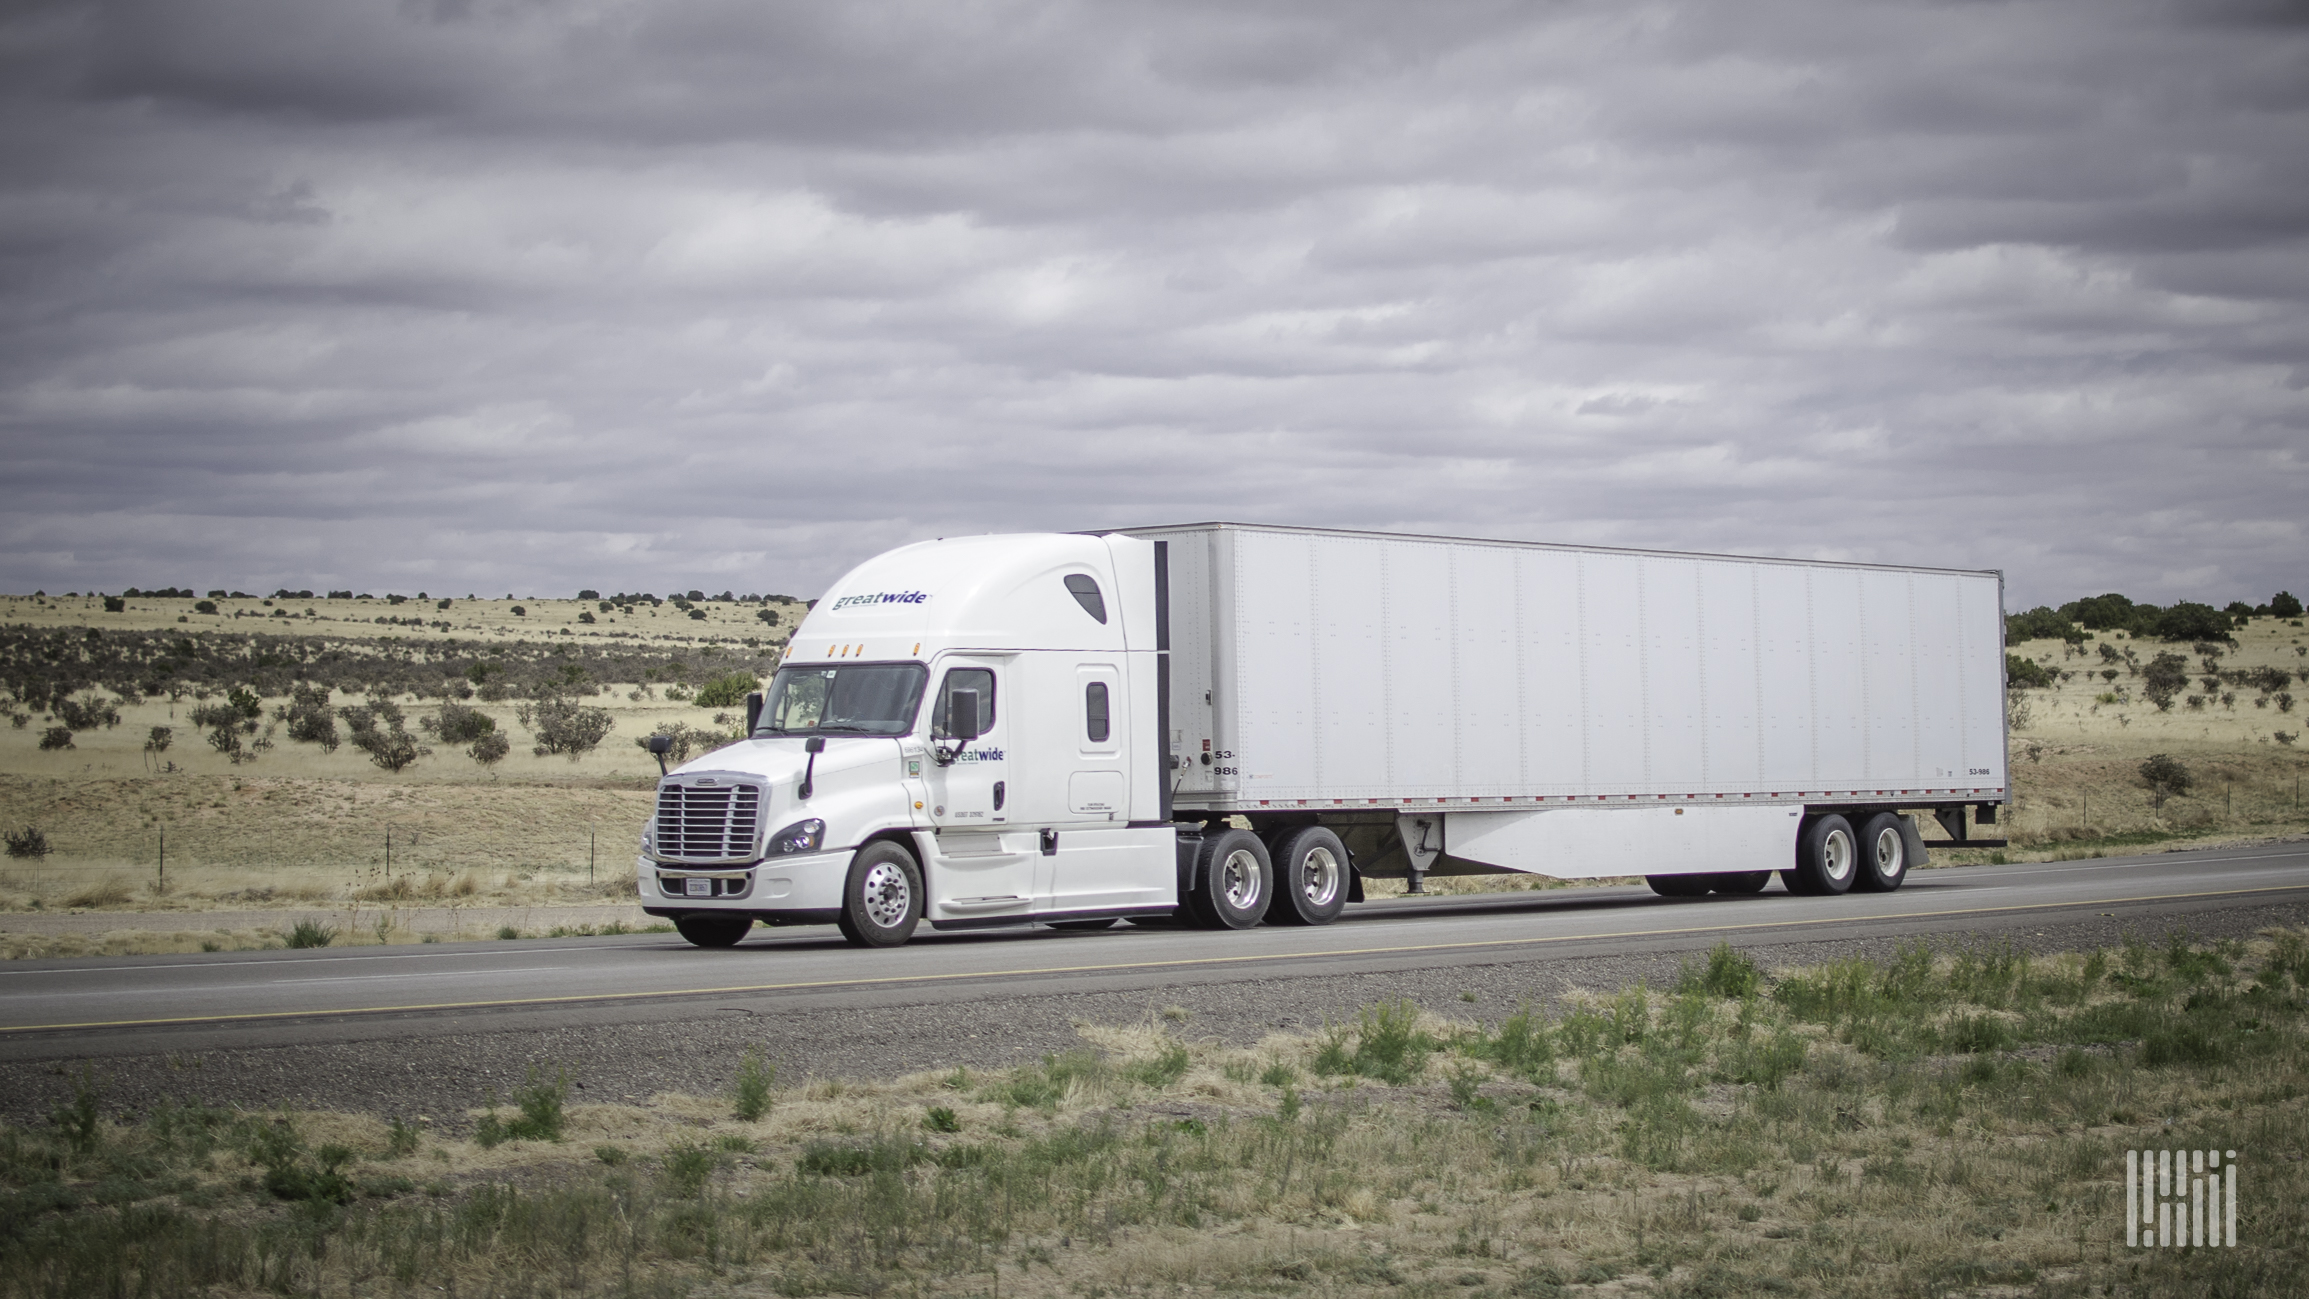 Colonial-level cyberattack on trucking likely – but preventable